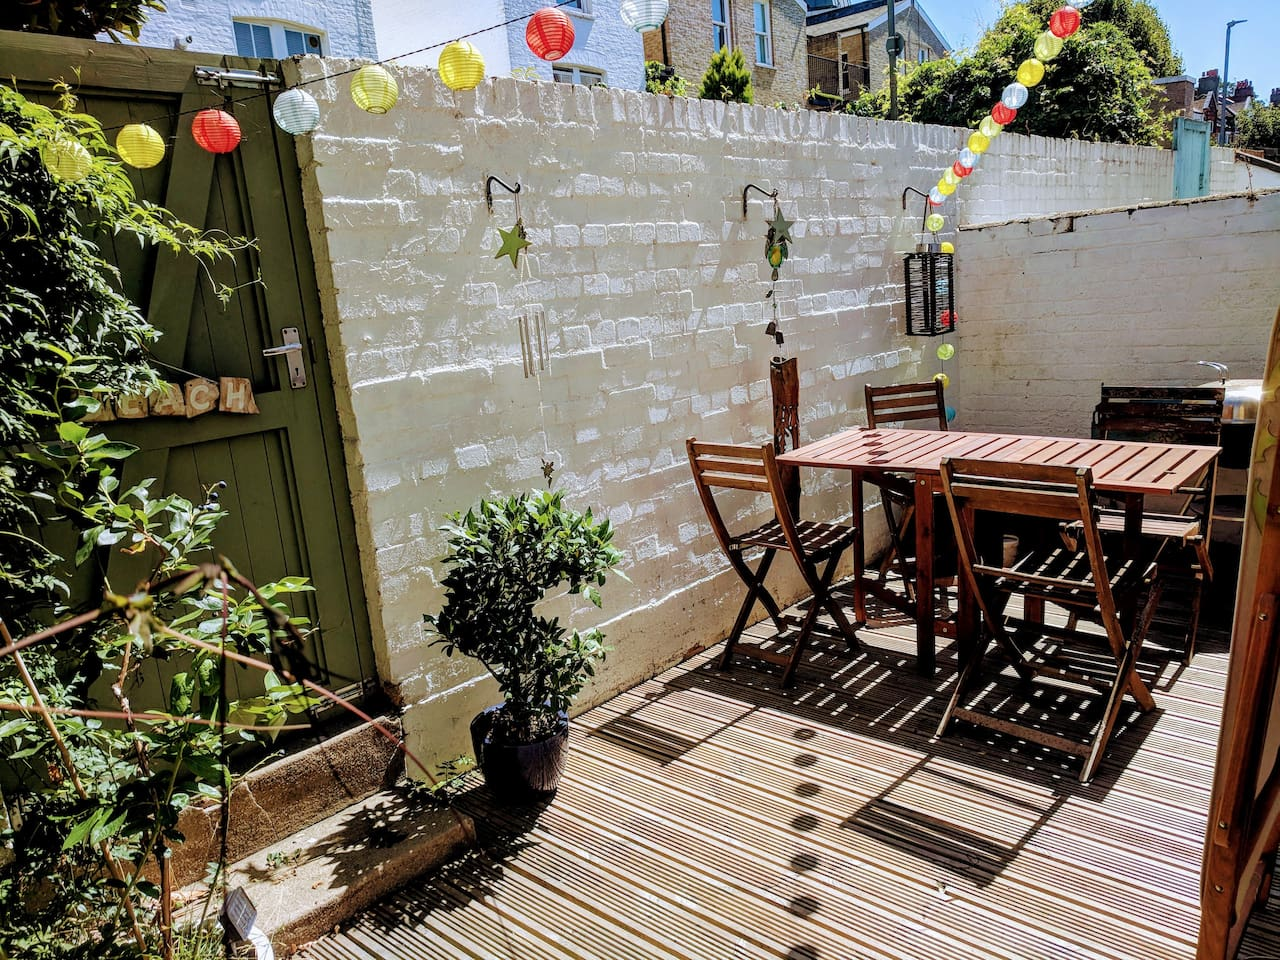 Generous sized deck with table, chairs and BBQ facilities including fire pit. Perfect for sunny afternoons and warm evenings.